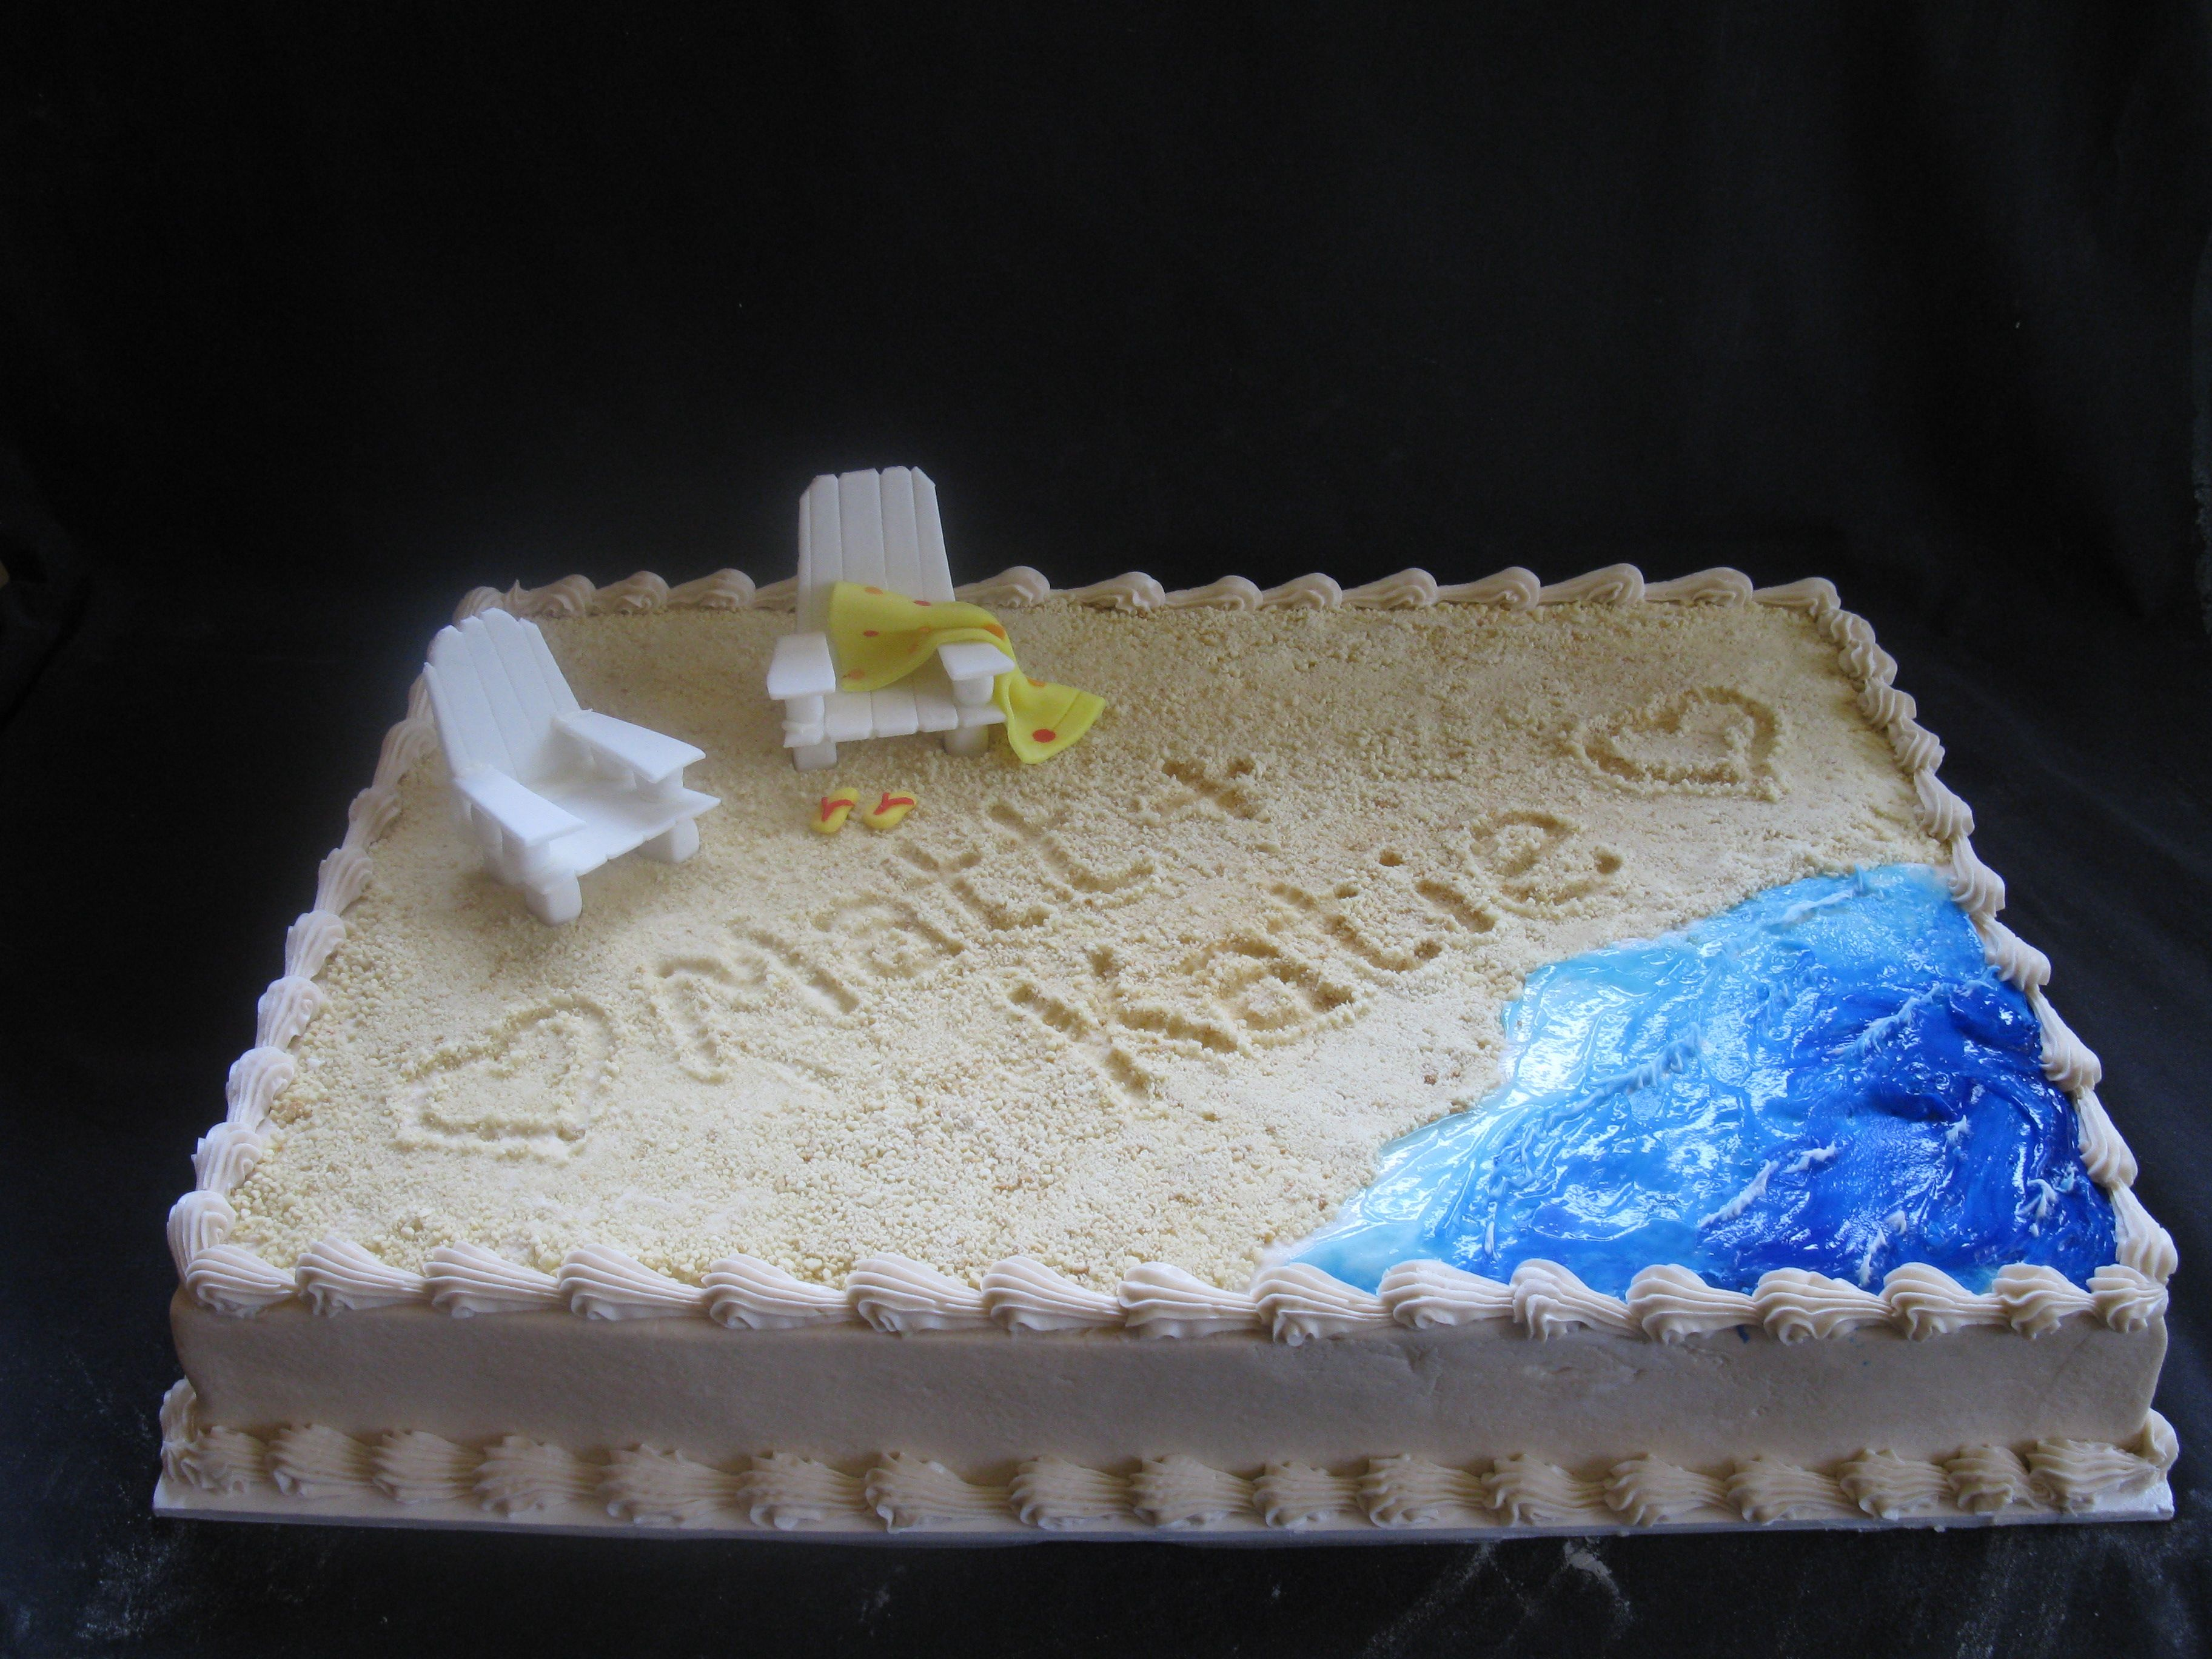 The customer requested a sheet cake that she could